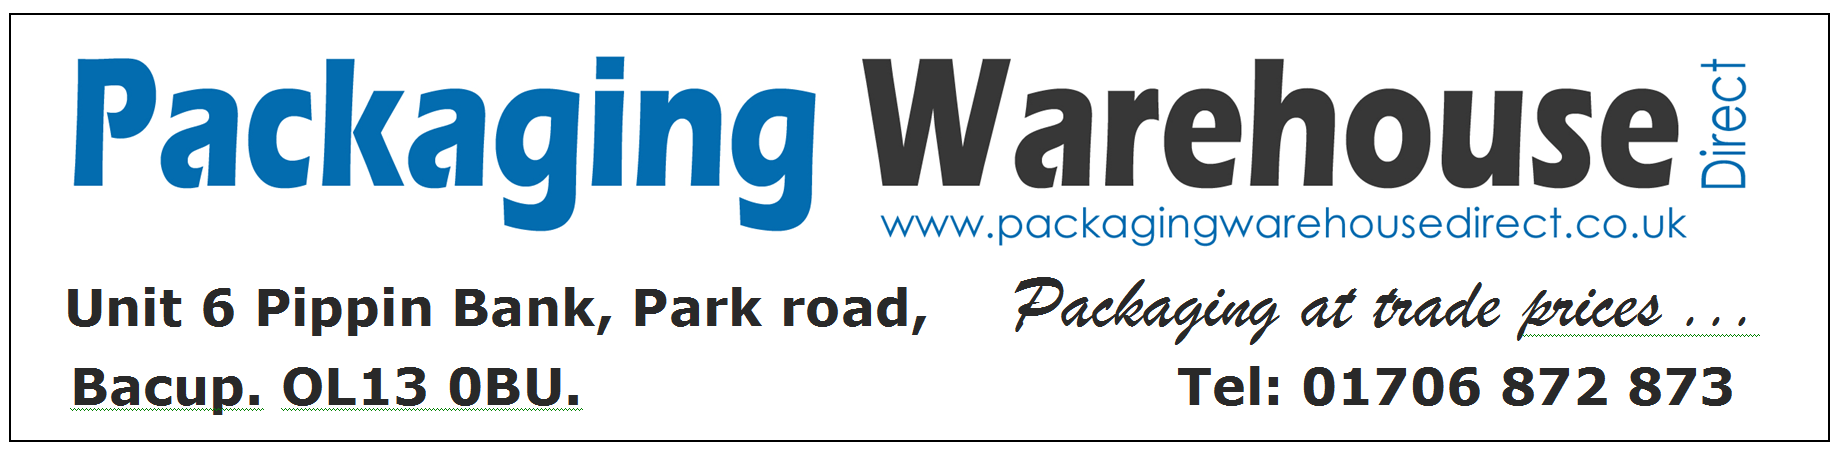 Packaging Warehouse Direct